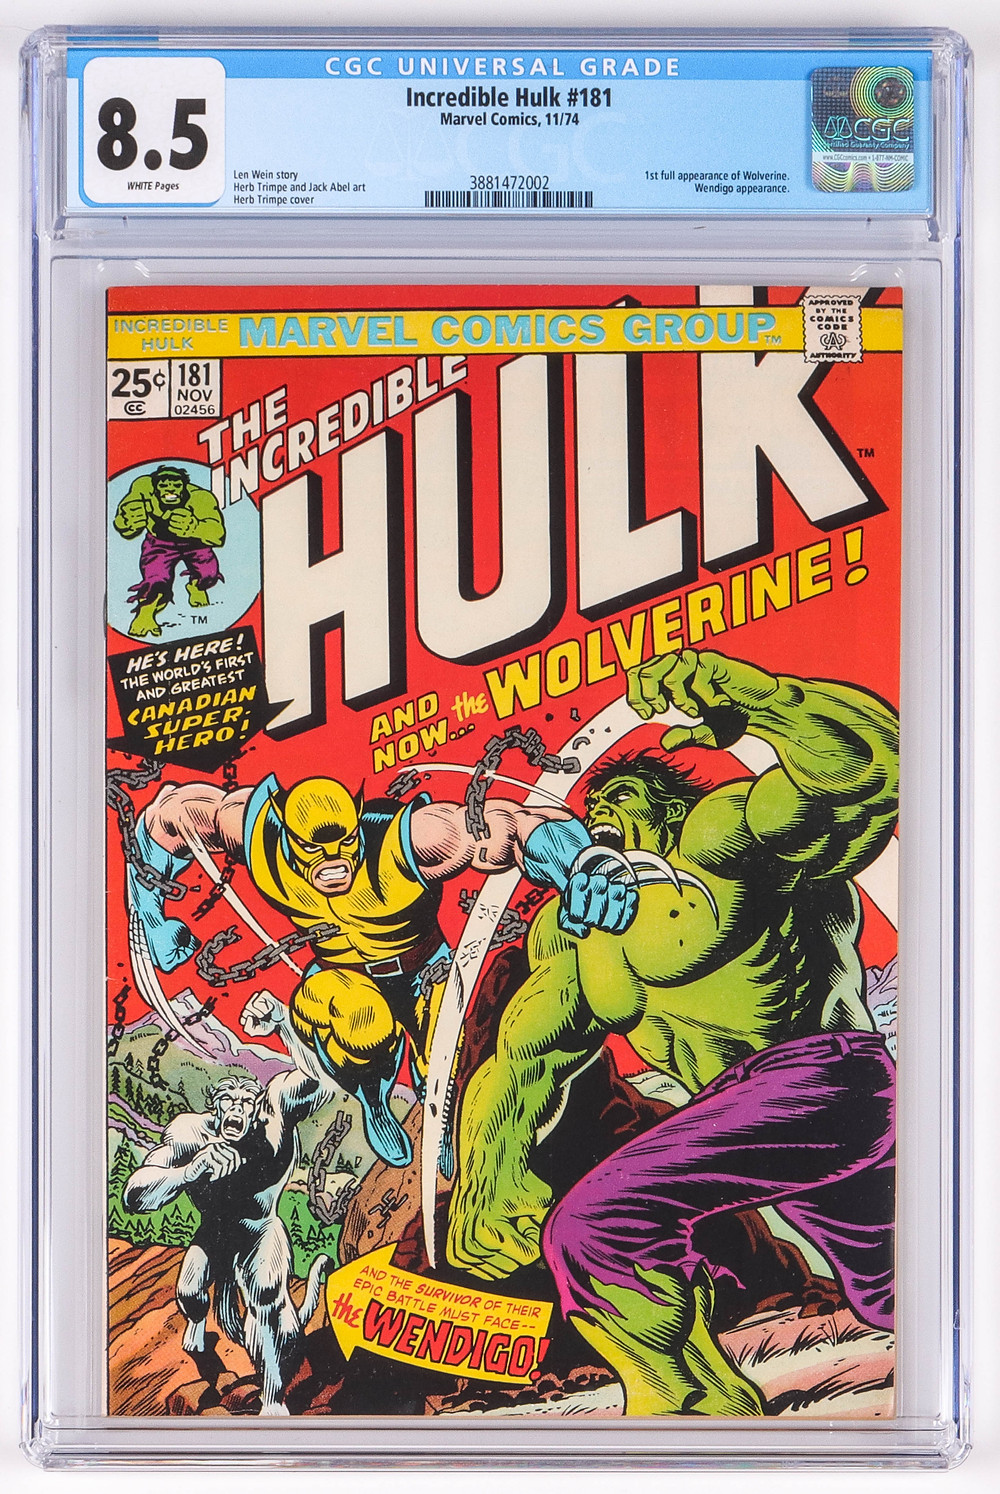 Incredible Hulk No 181, CGC 8.5 white pages, November 1974, first full appearance of Wolverine, not pressed or cleaned prior to grading by CGC, grader notes include slight bends, very light spine stress, very light foxing